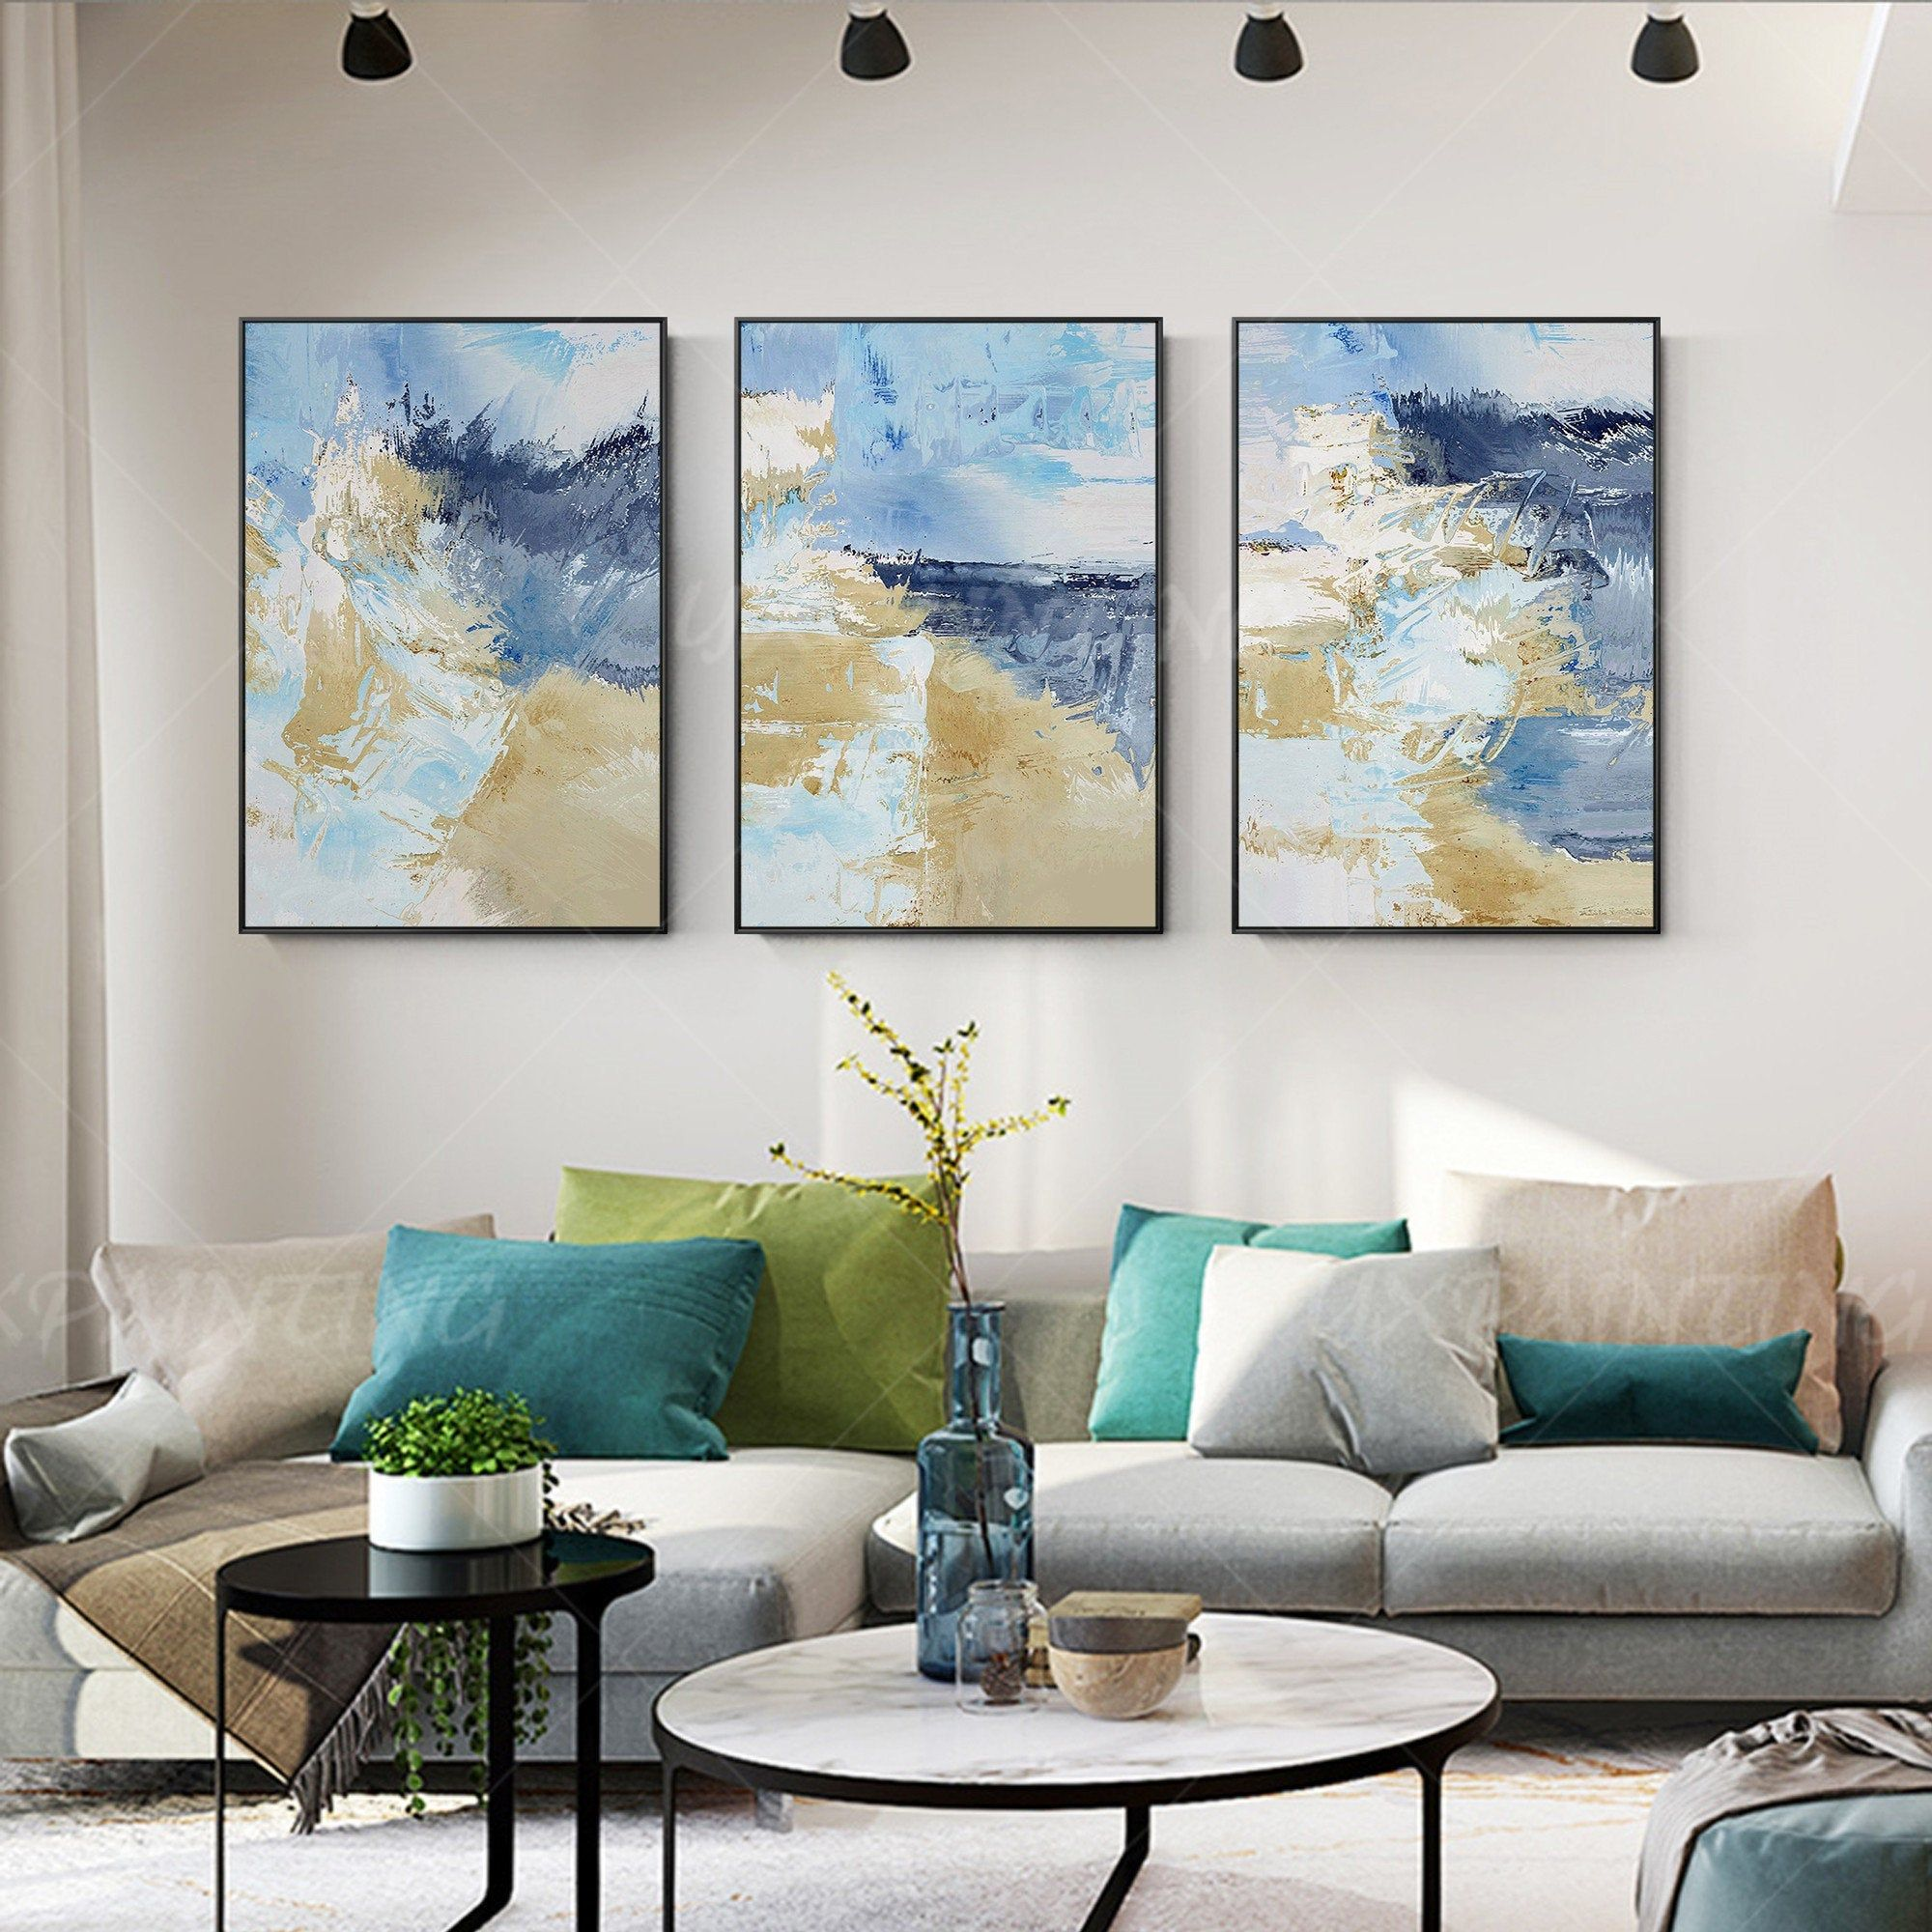 Framed Painting Wall Pictures Set Of 3 Wall Art Light Blue Sea Etsy In 2020 Wave Art Painting Painting Frames Wall Painting